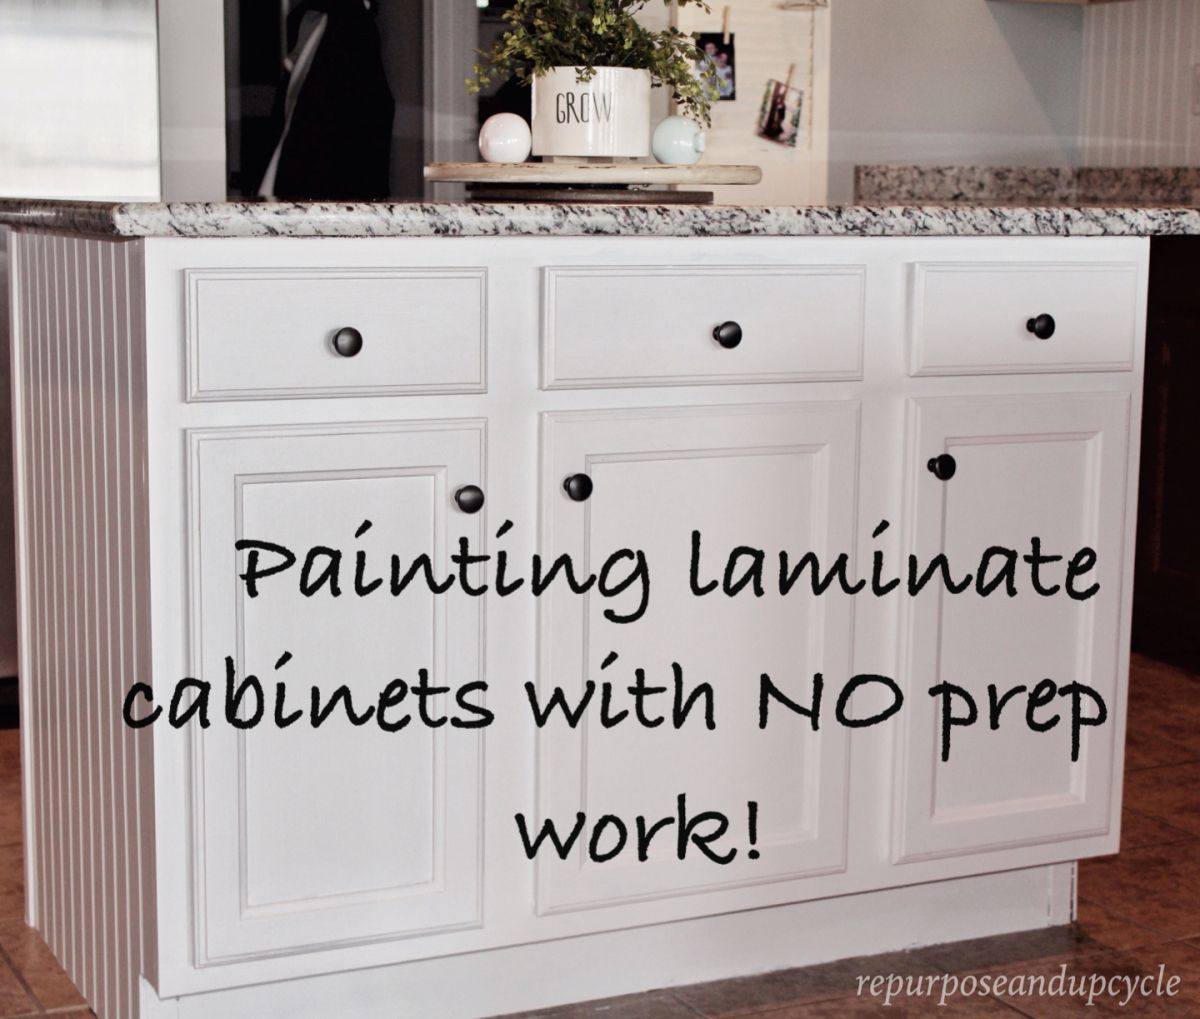 Painting Laminate Cabinets With No Prep Work Painting Laminate